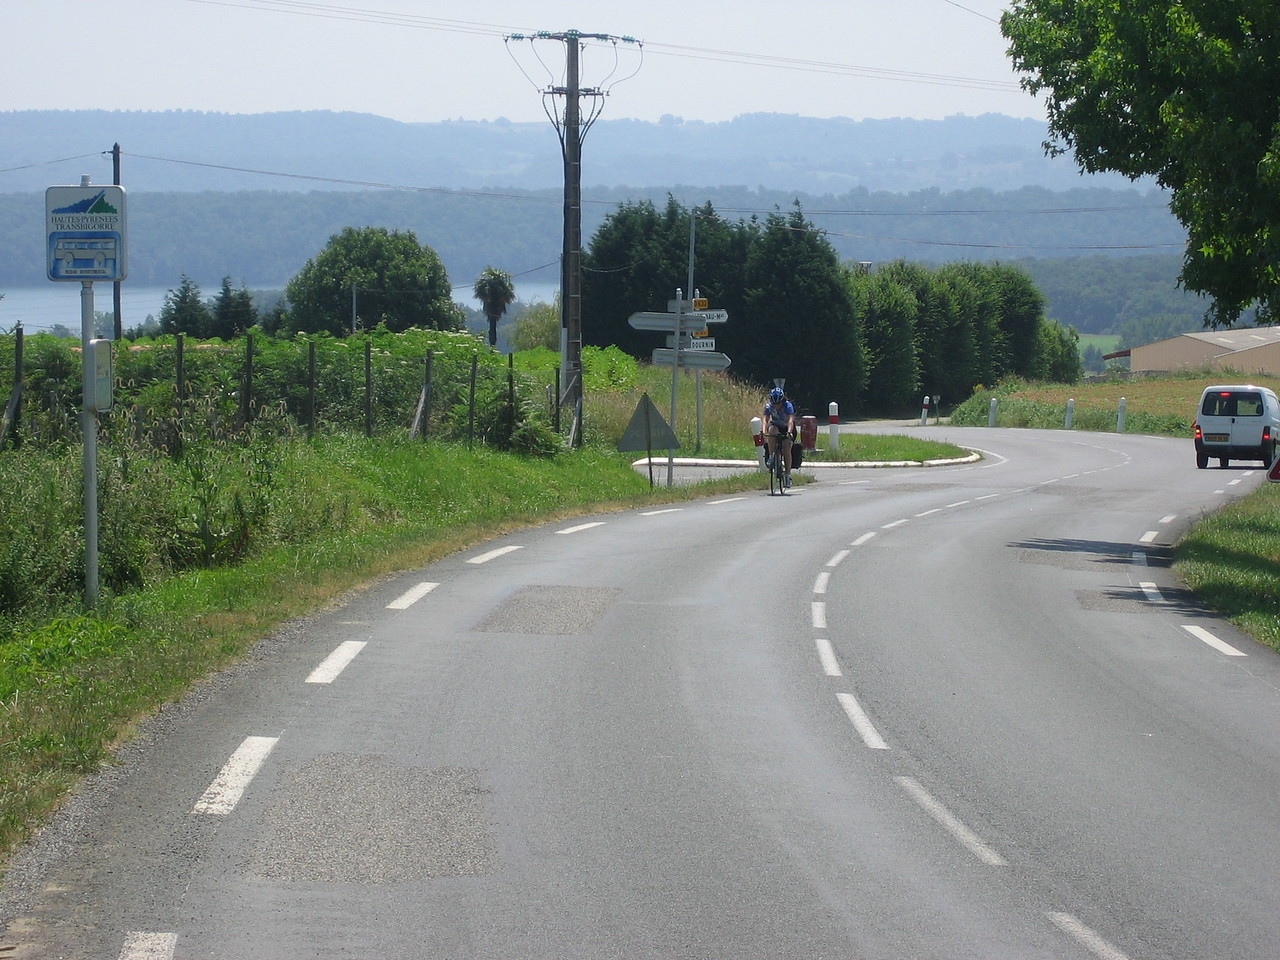 They day of the many uphills. 60km of 2km up and 2km down. No flats. Don't go west along the south of France. Go south.